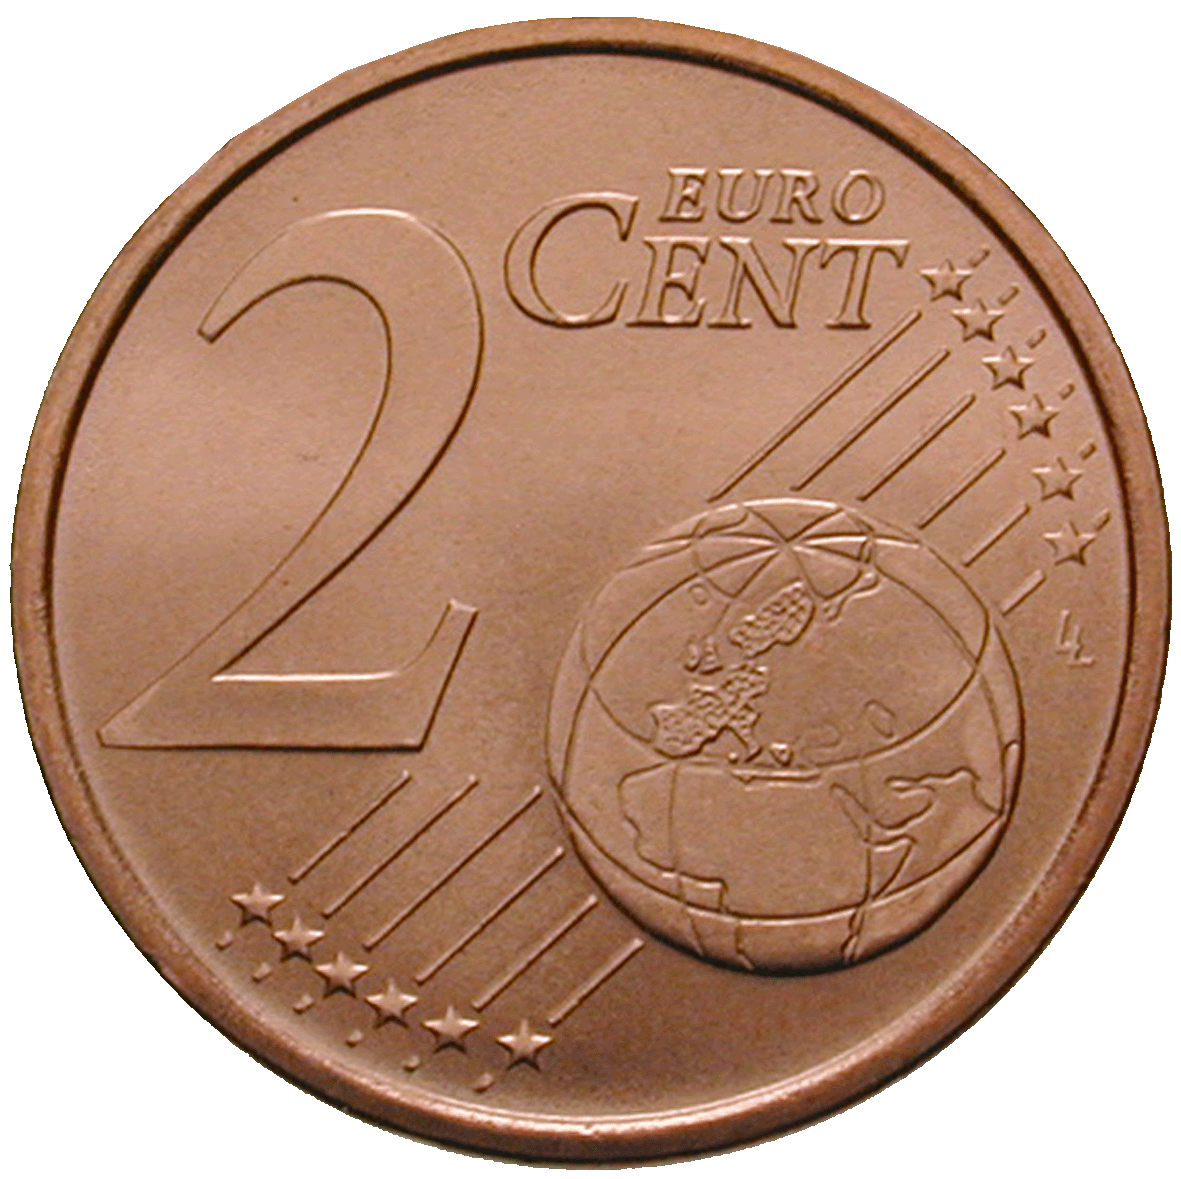 Republik Italien, 2 Eurocent 2002 (reverse)